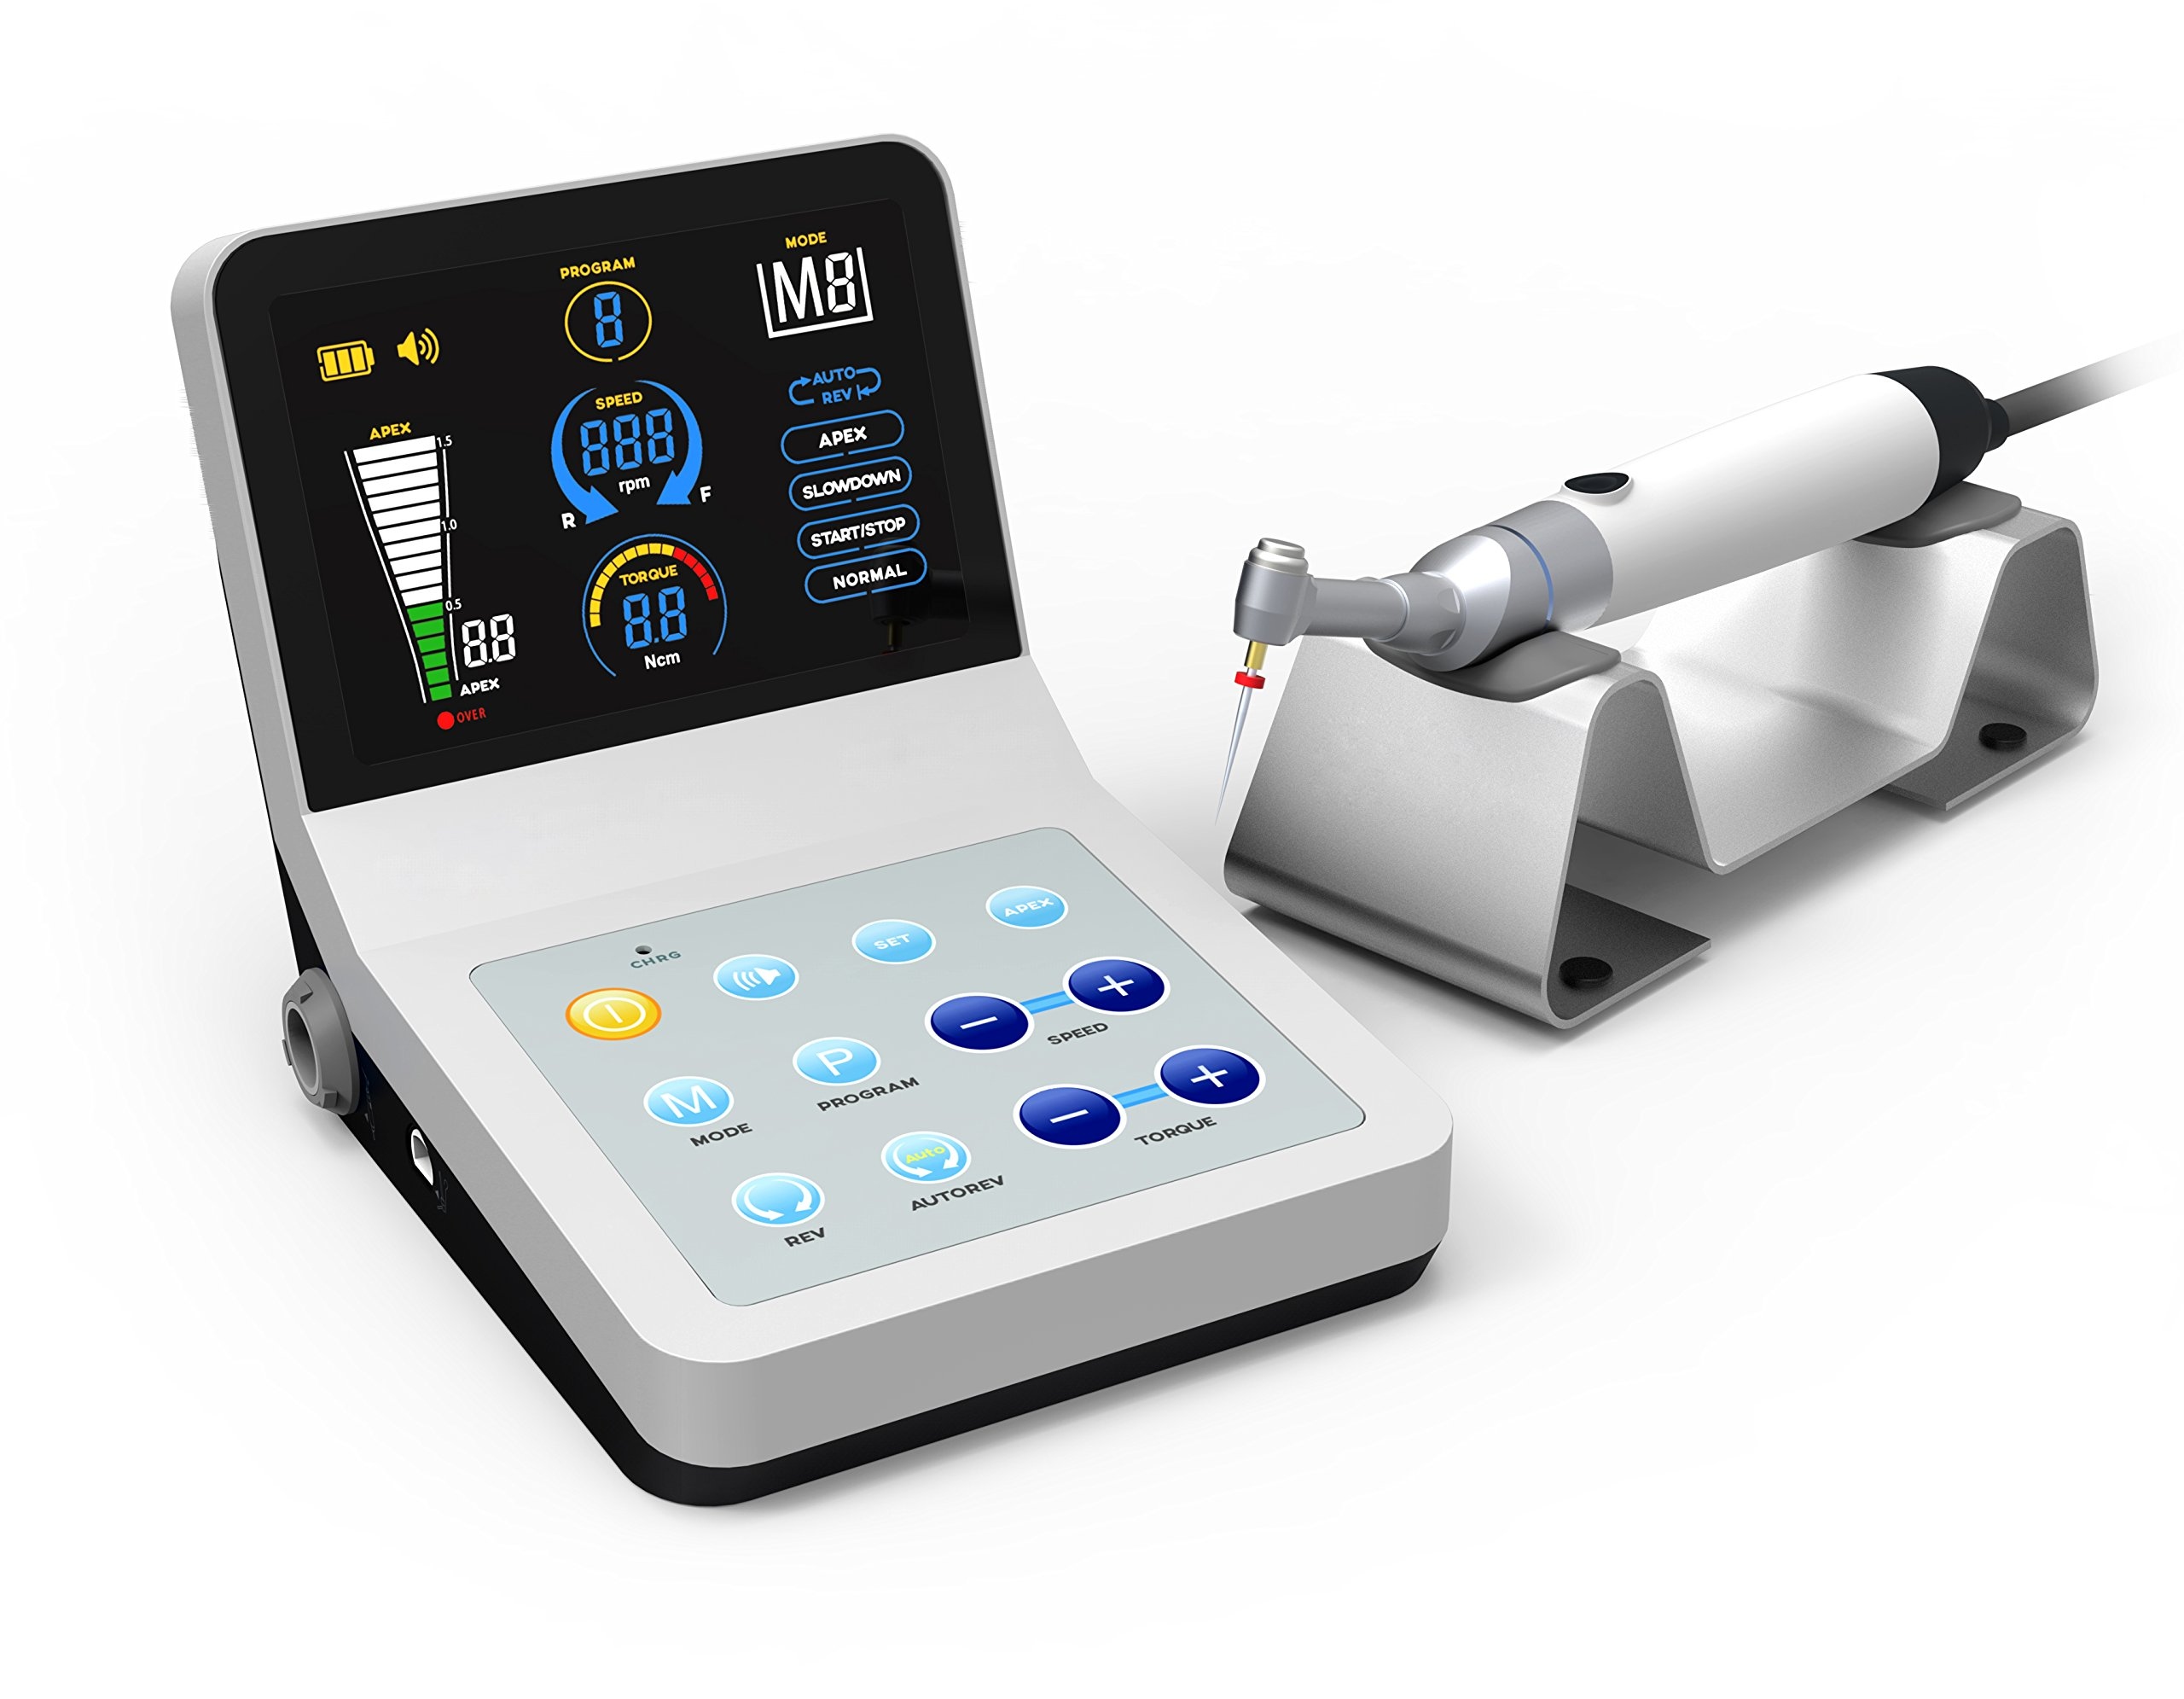 Aphrodite Brand New Apex Locator Endodontic R-SMART PLUS Root Canal Finder Endo Equipment with Large Colorful OLED Screen Model by East